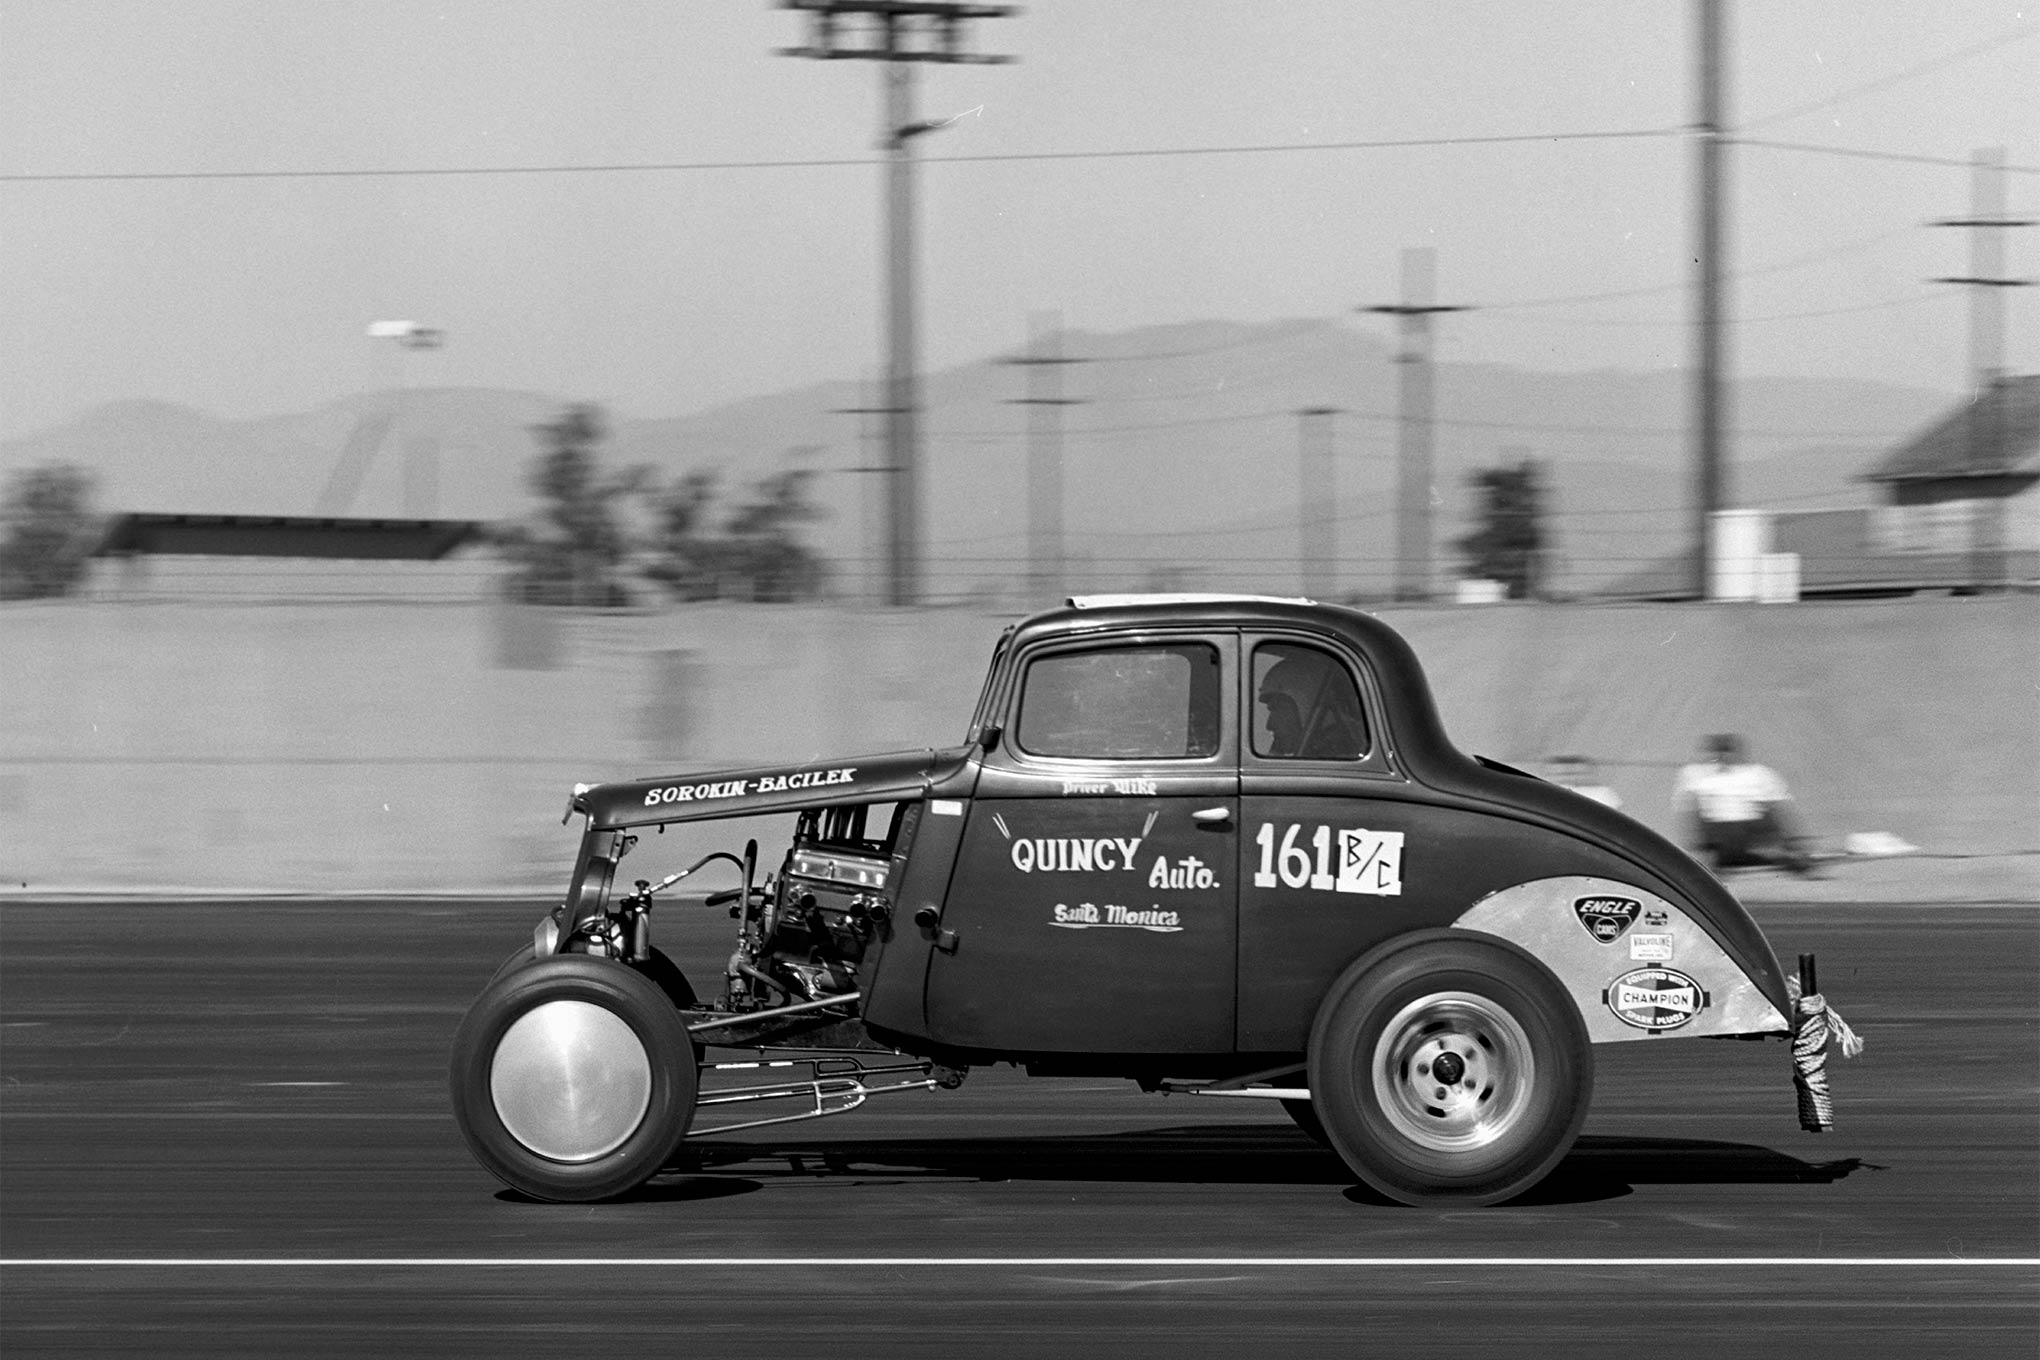 In B/Competition, the Sorokin, Bacilek, and Pistone 1936 Willys beat out the competition, even though it broke in the final round coasting to the finish. All three principals would go on to race for years, with Mike Sorokin becoming the driver of the infamous Surfers Top Fuel team in the mid-1960s.